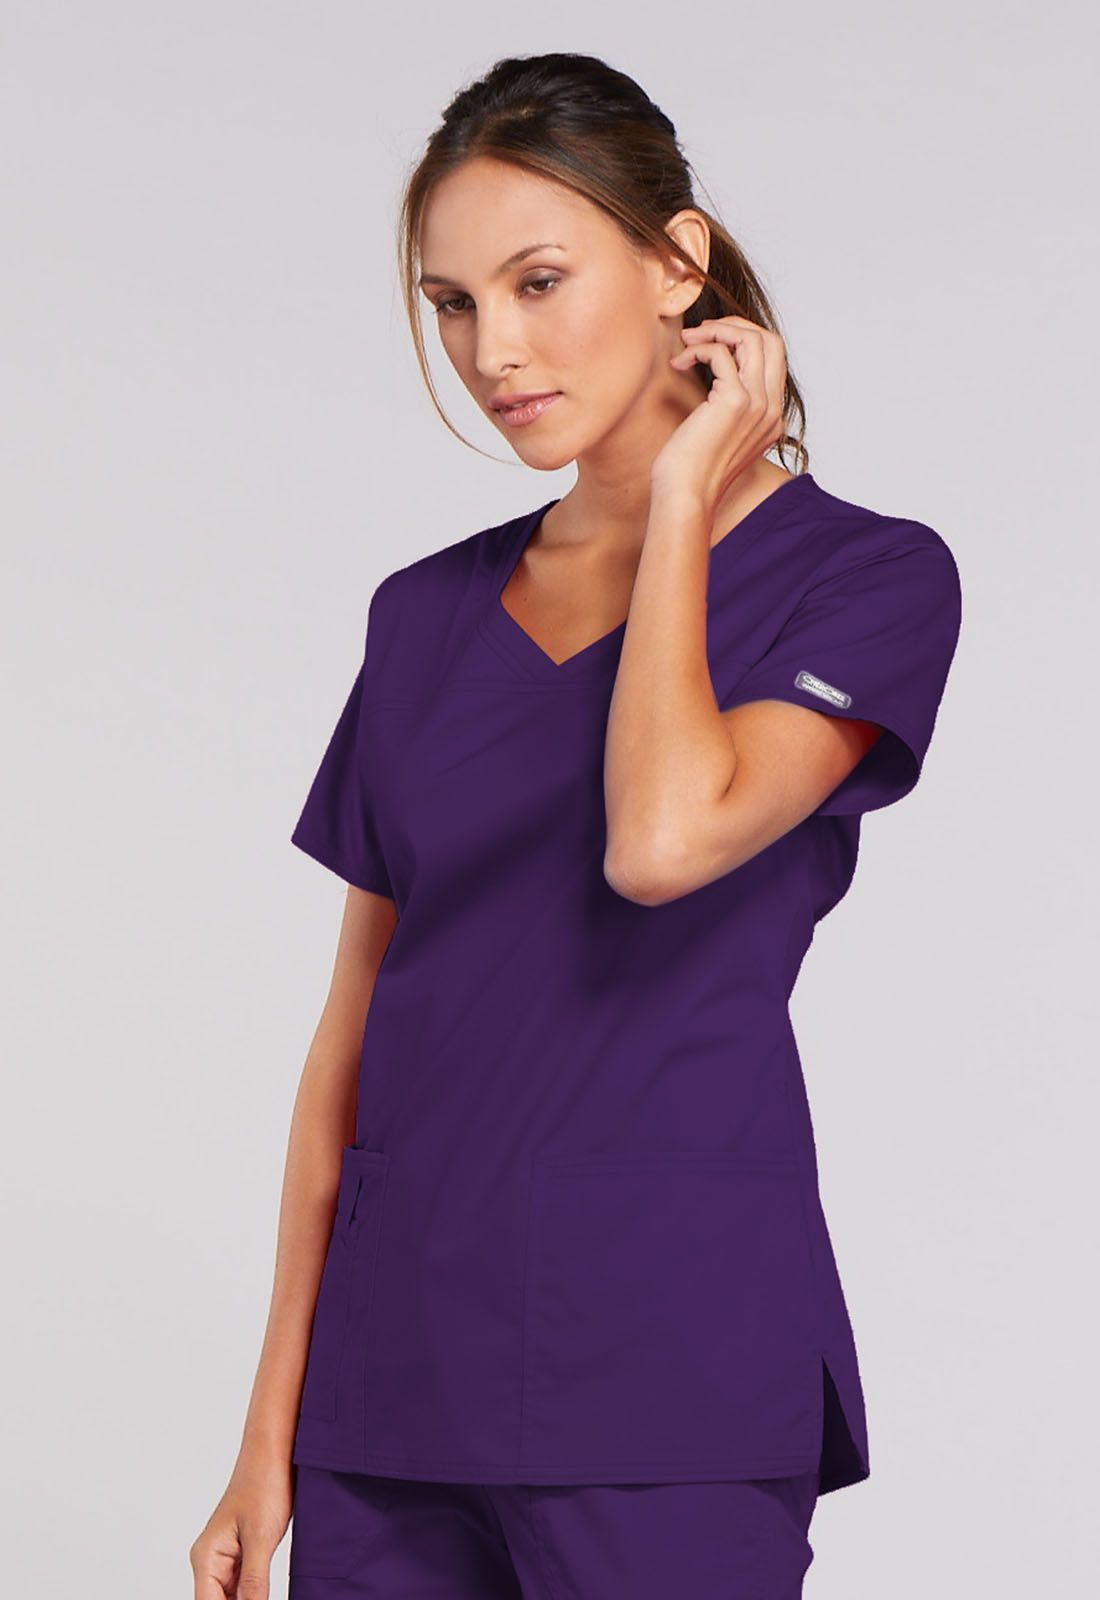 https://medcloth.by/images/stories/virtuemart/product/4727-eggplant-5.jpg